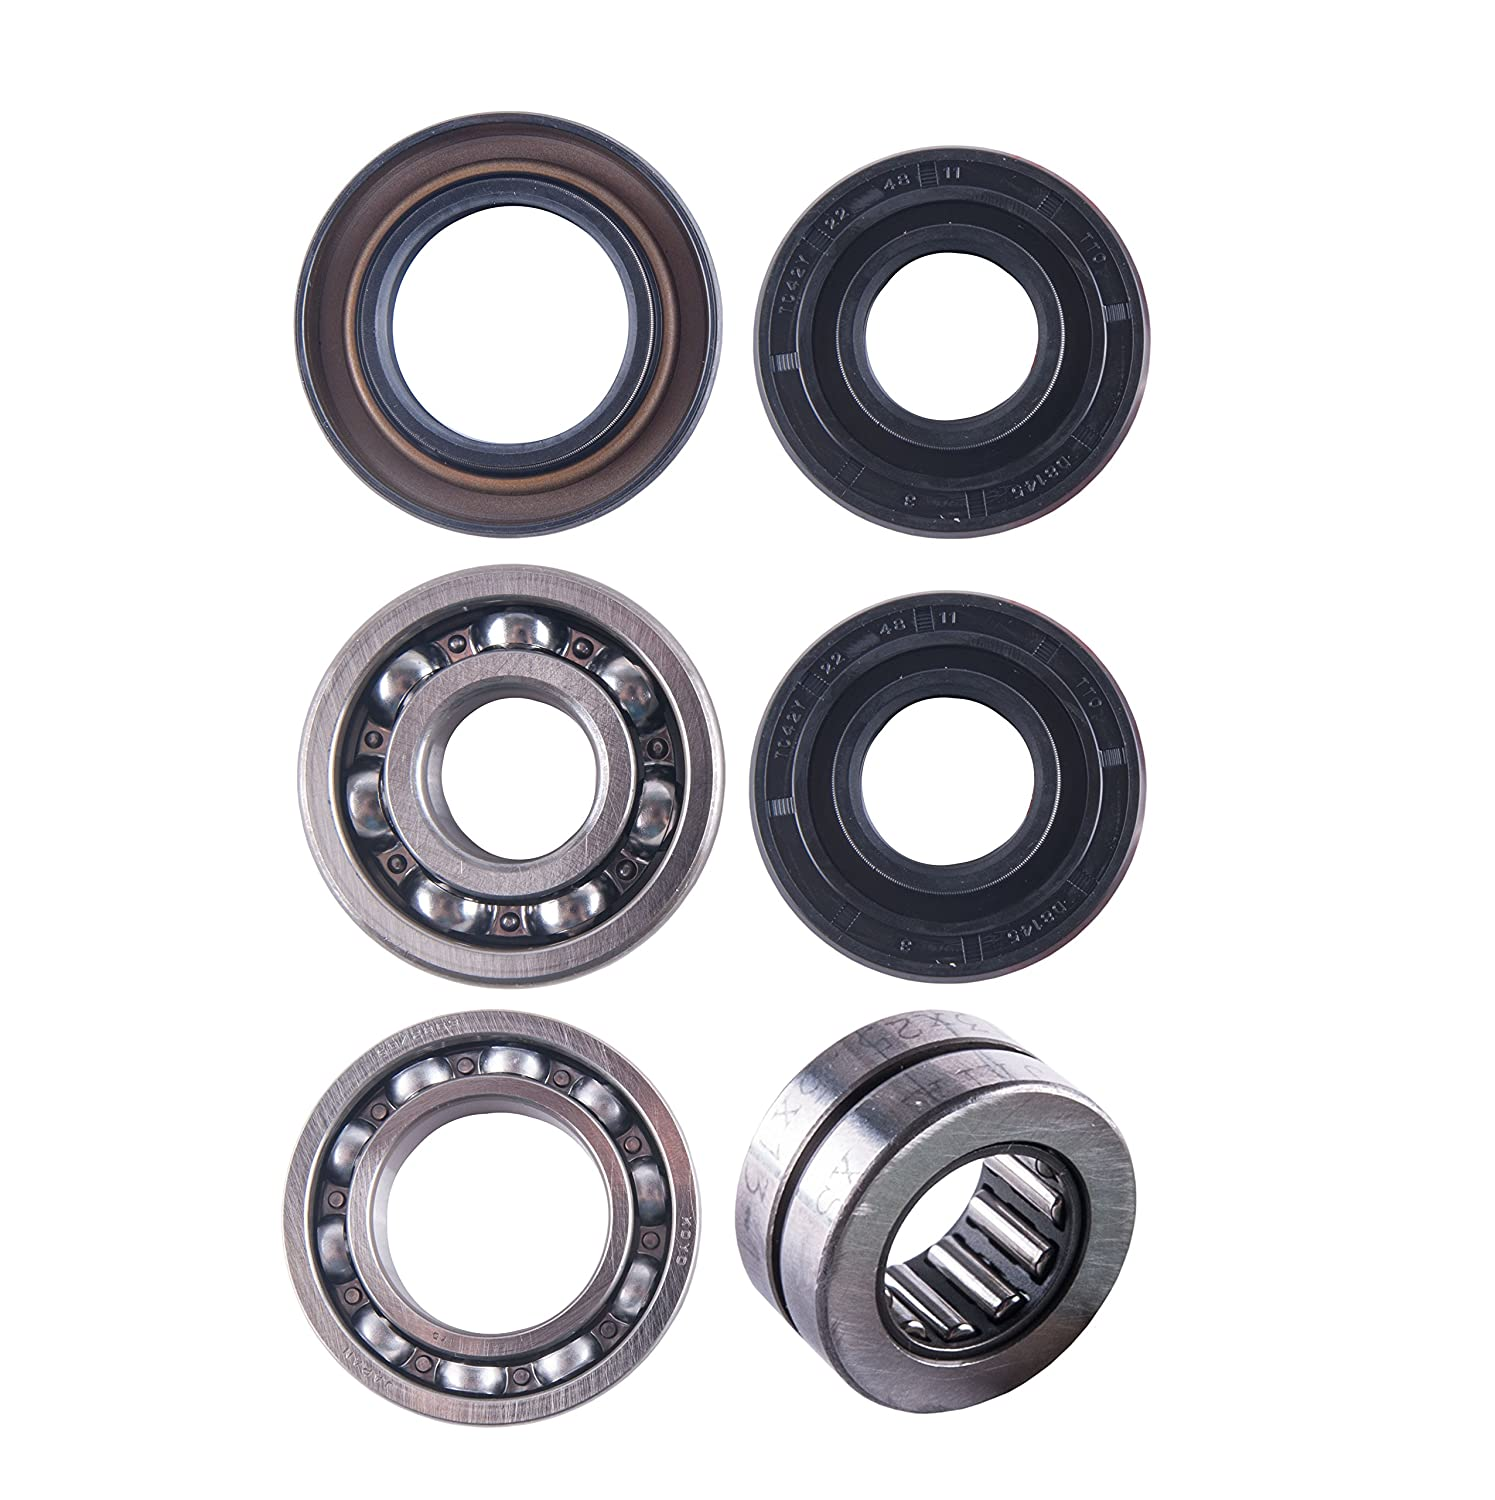 East Lake Axle Front differential bearing /& seal kit compatible with Honda TRX 300 FW 1988 1989 1990 1991-00